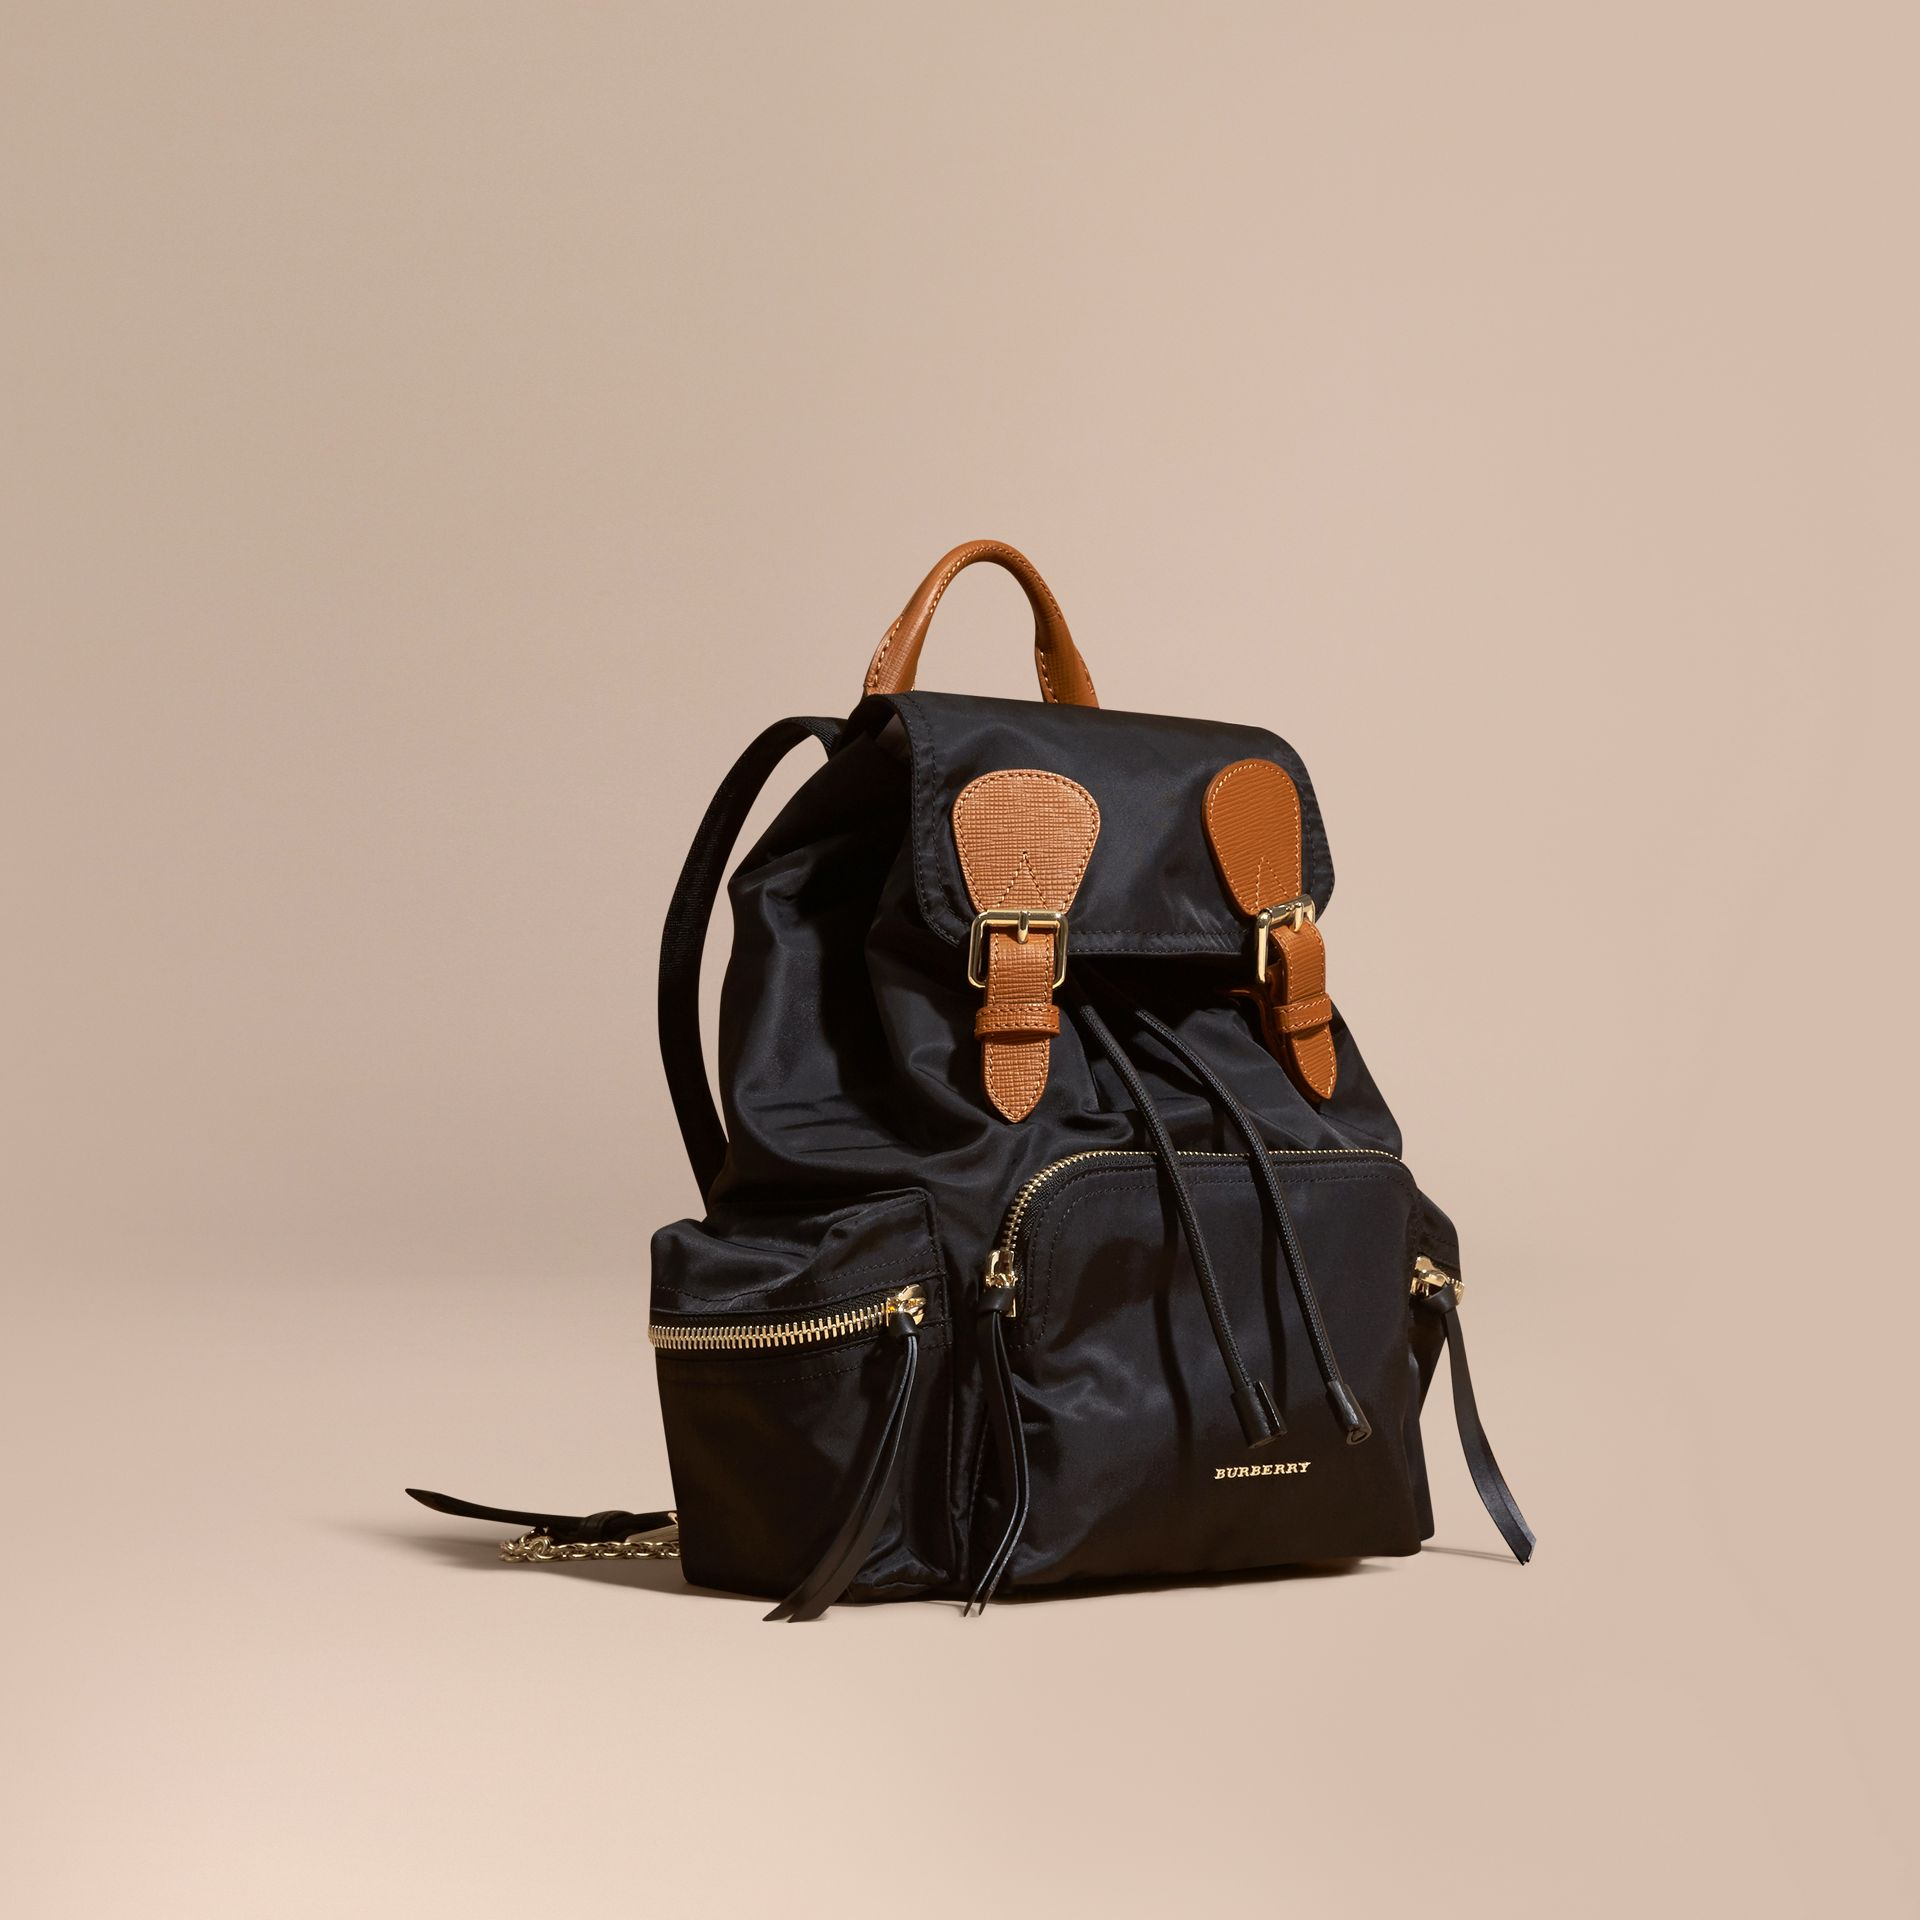 Sac The Rucksack moyen en nylon technique et cuir (Noir) - Femme | Burberry - photo de la galerie 1